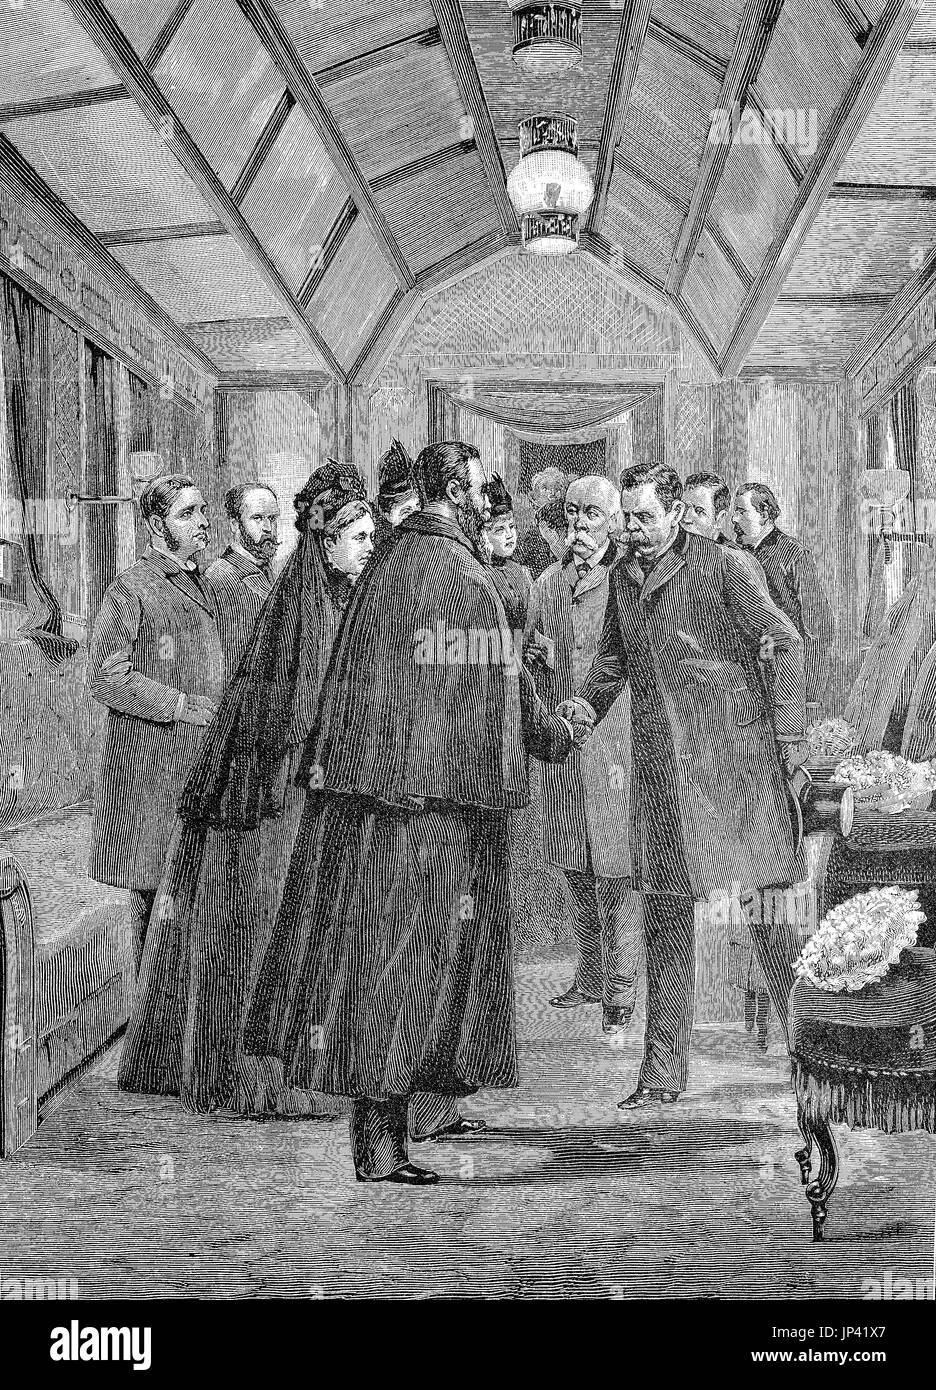 King Humbert, accompanied by Crispi, welcomes the Emperor Frederick in San Pier d Arena, on March 10, 1888, now Sampierdarena, Genoa, Italy, digital improved reproduction of a woodcut publication from the year 1888 - Stock Image